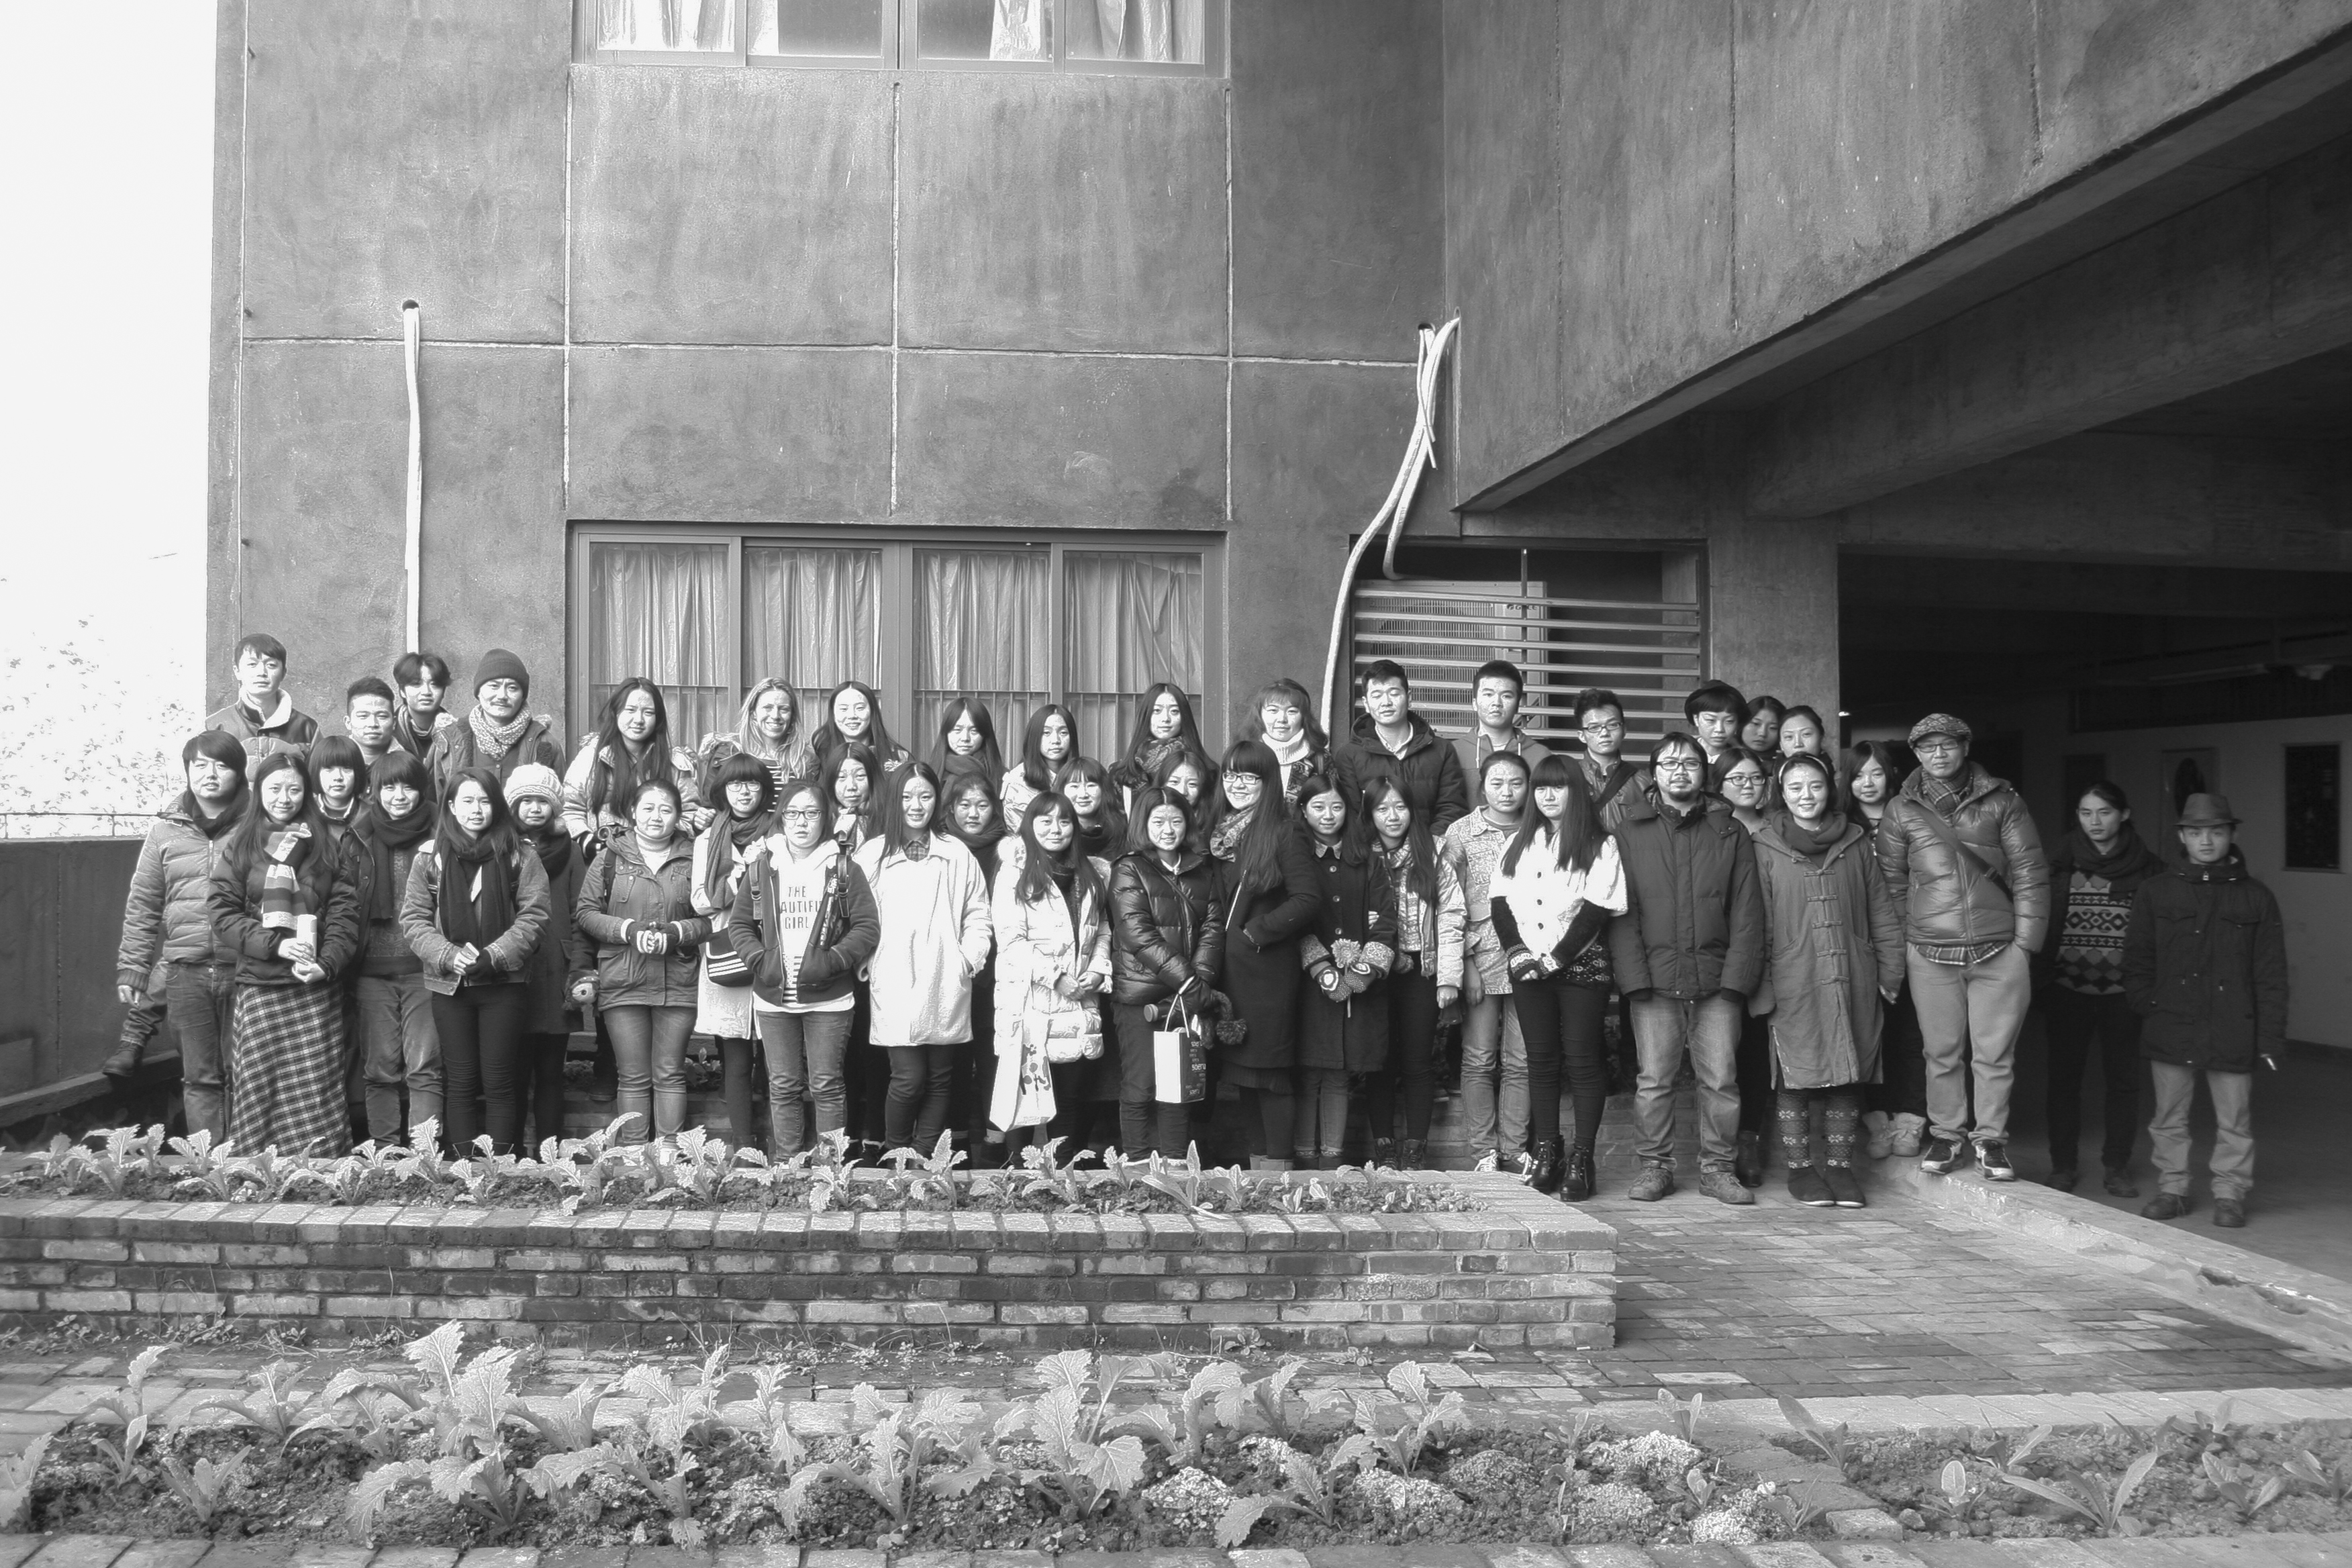 Posing in the very cold and very early morning before the TransArtists workshop. Meet the talented students of the Sichuan Fine Arts Institute in Chongqing, China, December 2014